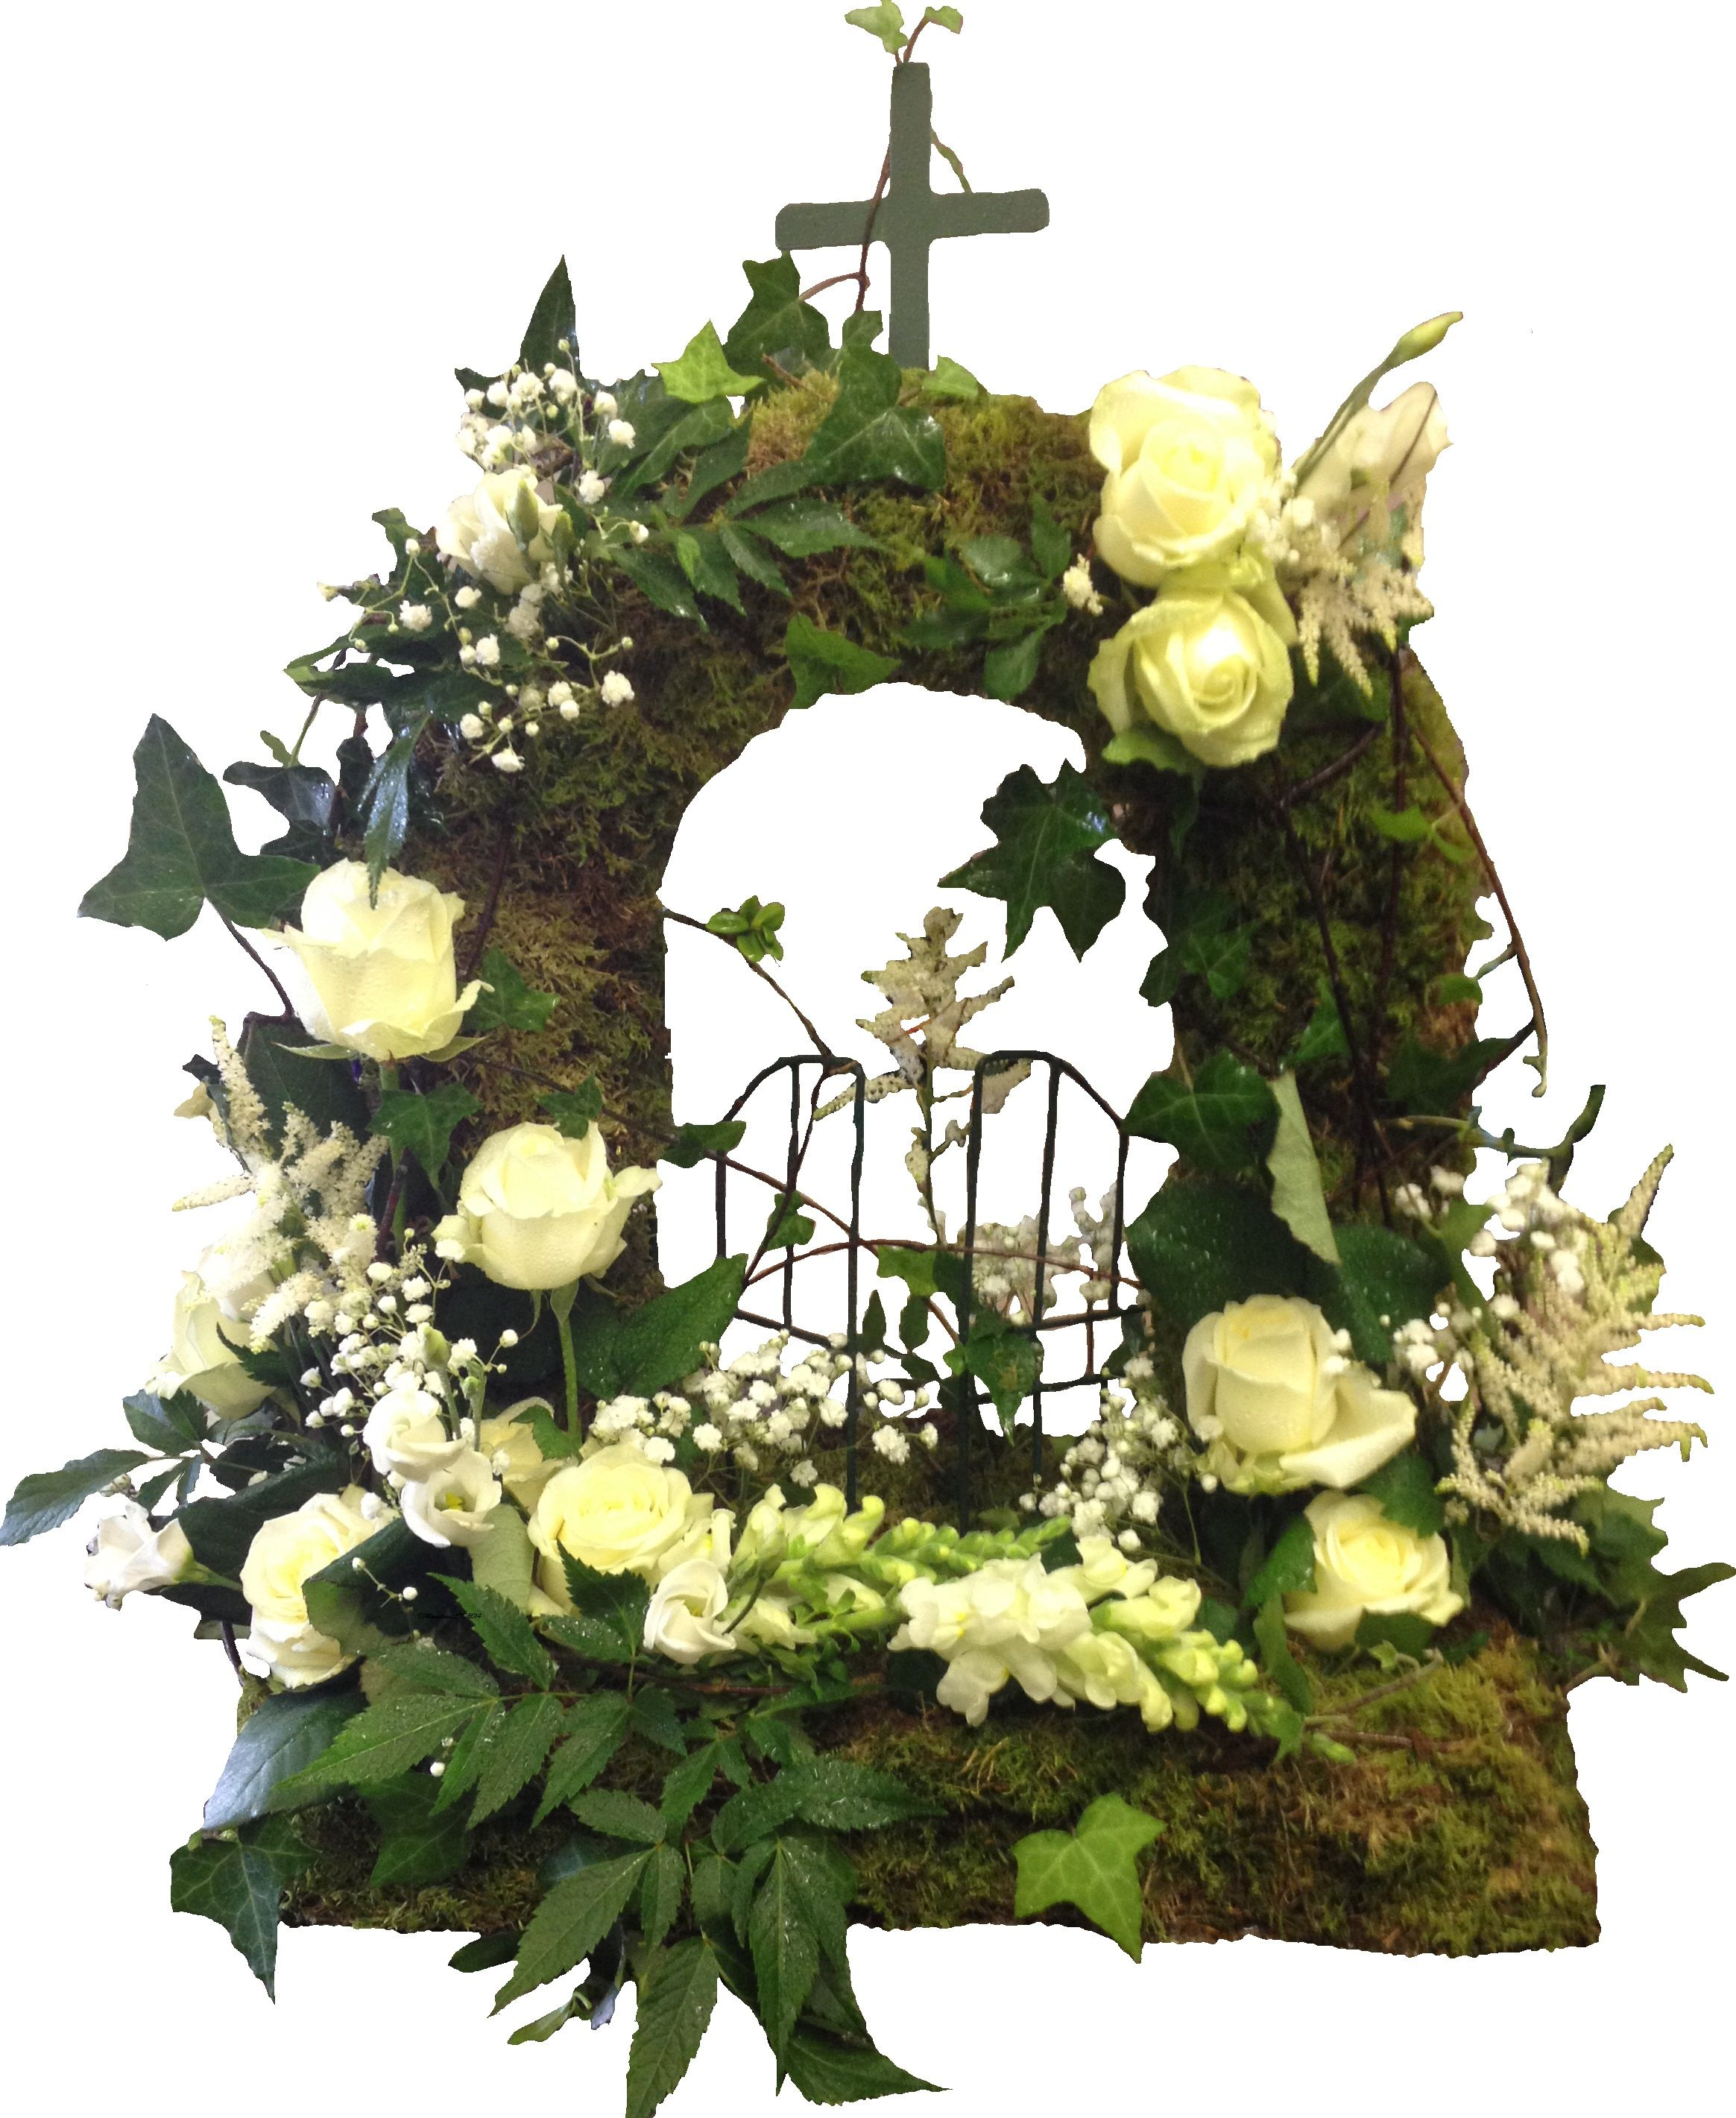 Natural style gates of heaven floral flowers moonstones ltd natural style gates of heaven floral flowers moonstones ltd fareham florist sympathy tribute gates heaven calla roses izmirmasajfo